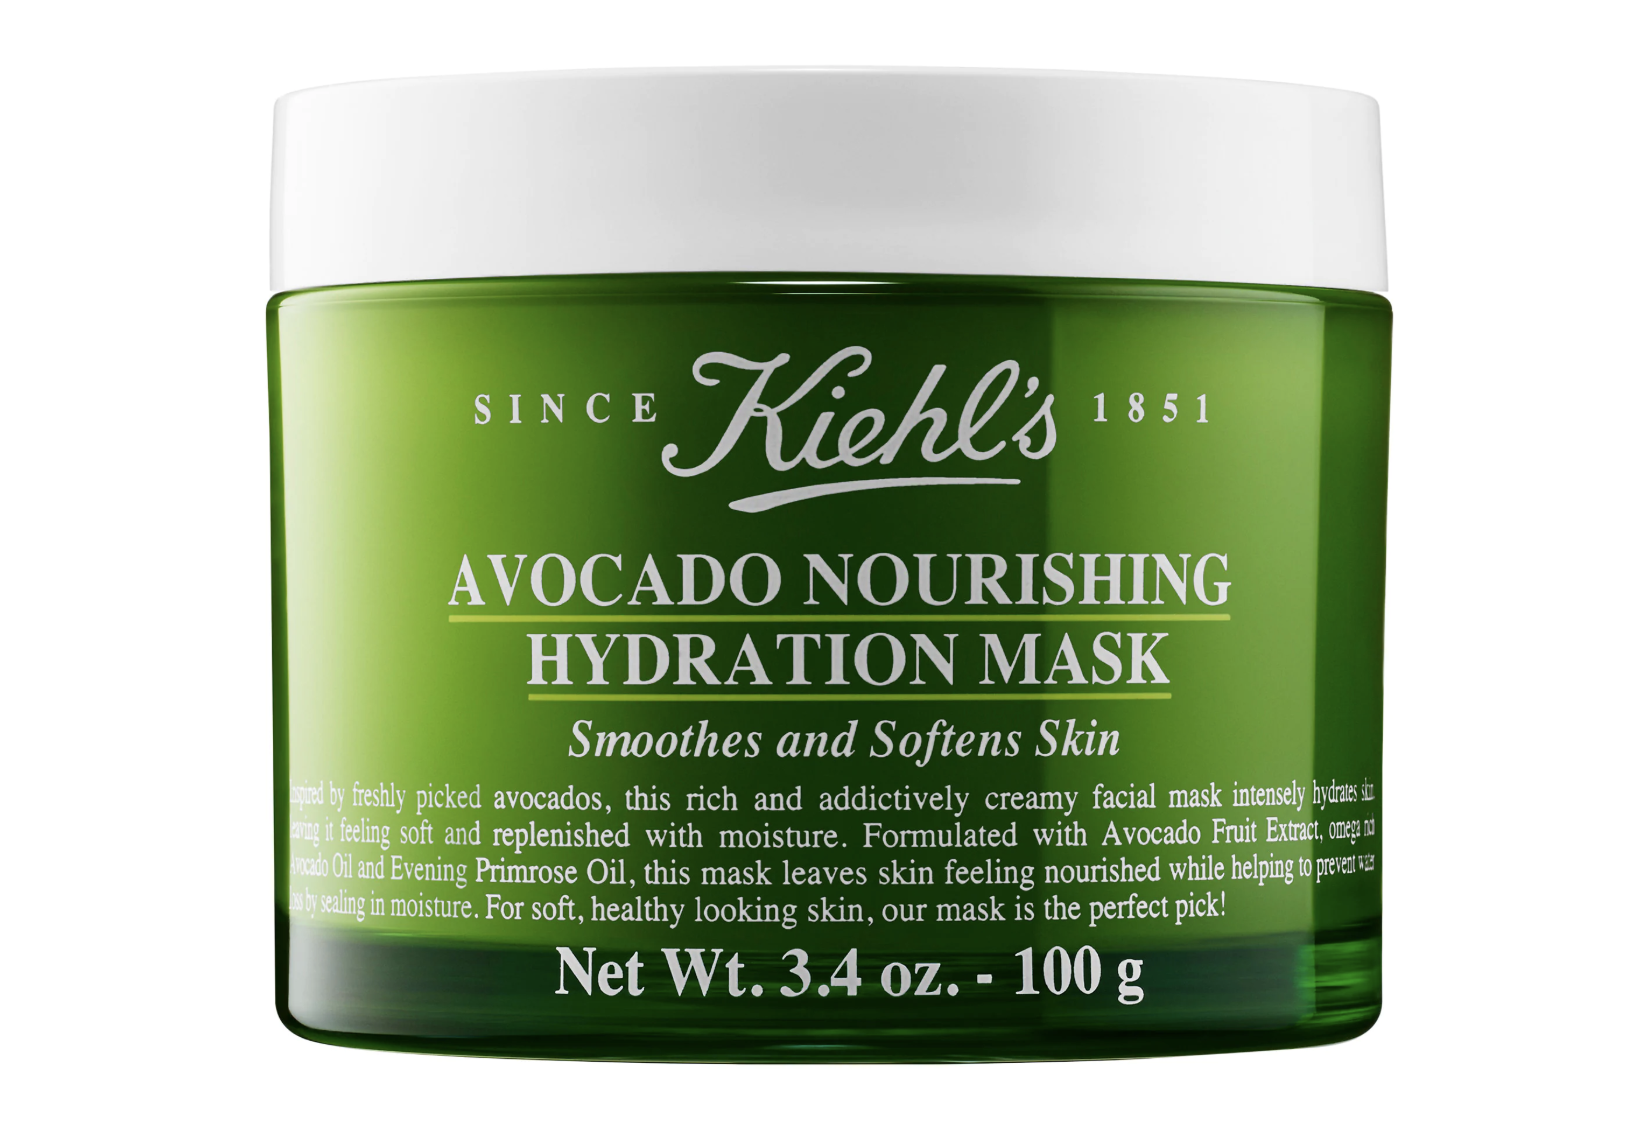 Our Similar Pick: Kiehl's Avocado Nourishing Hydration Mask